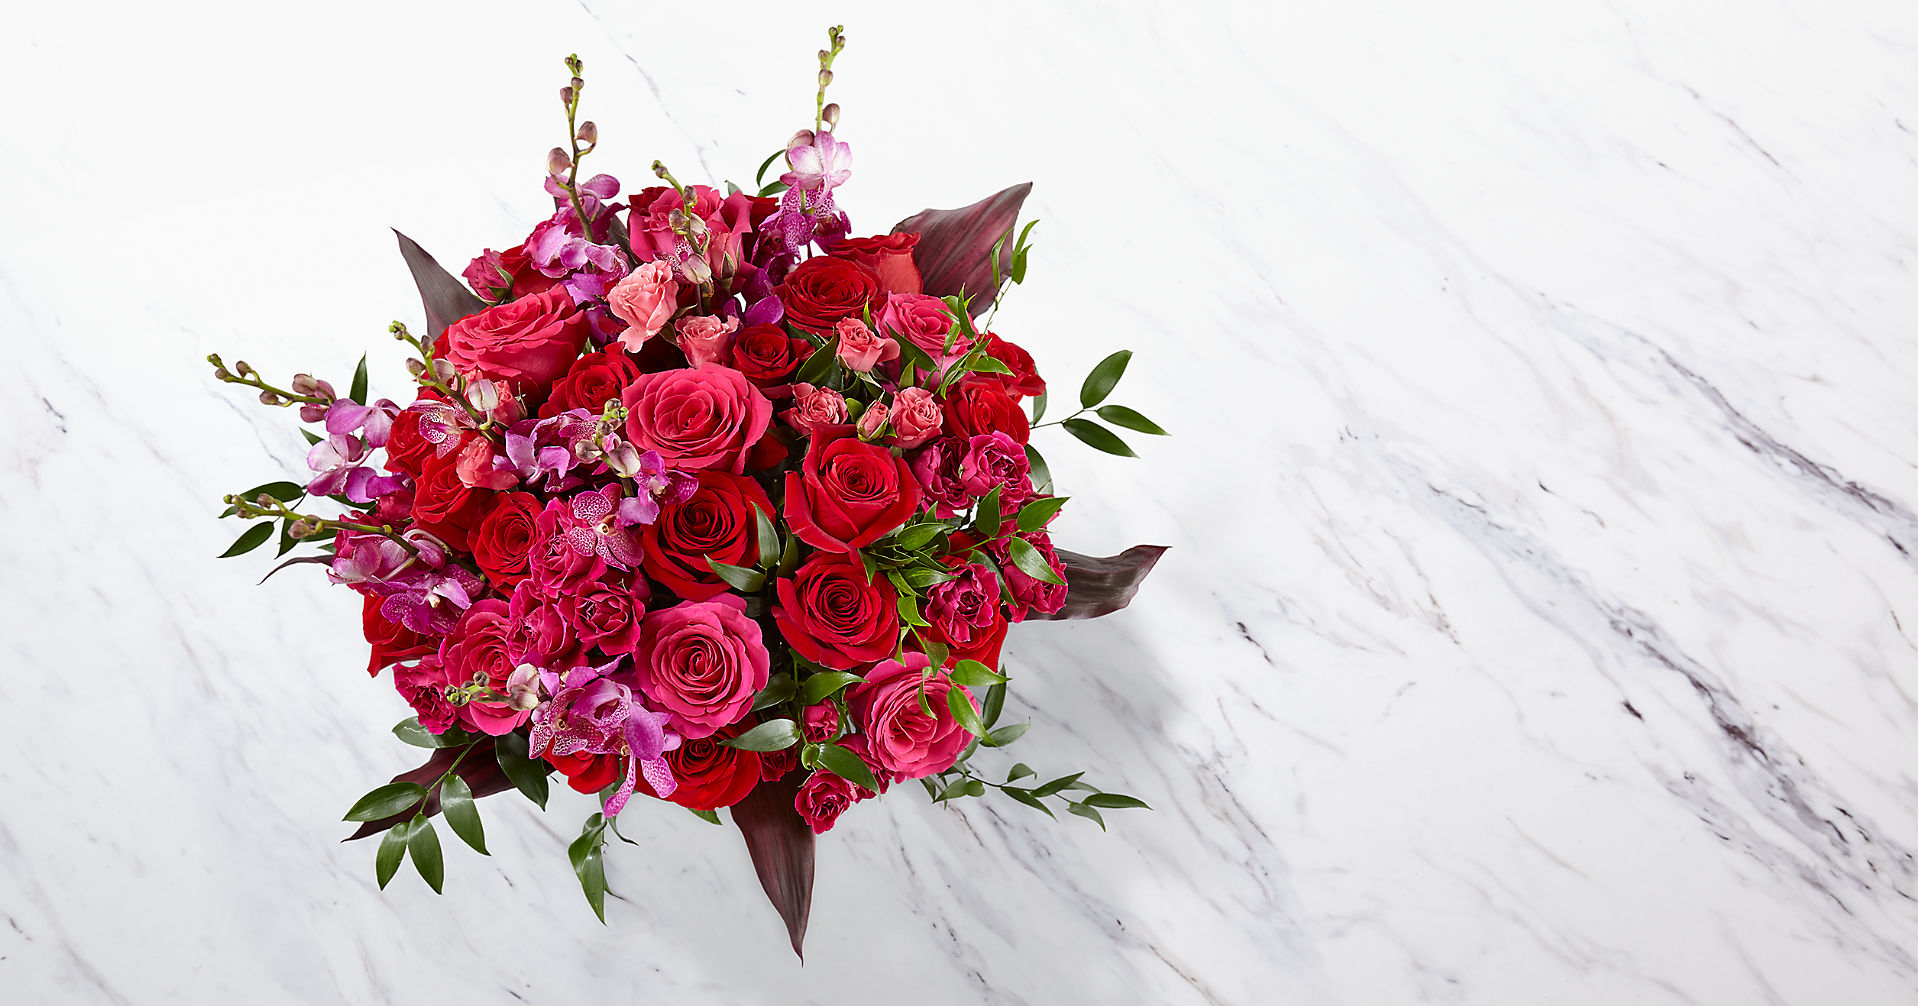 Heart's Wishes™ Luxury Bouquet - VASE INCLUDED - Image 2 Of 5